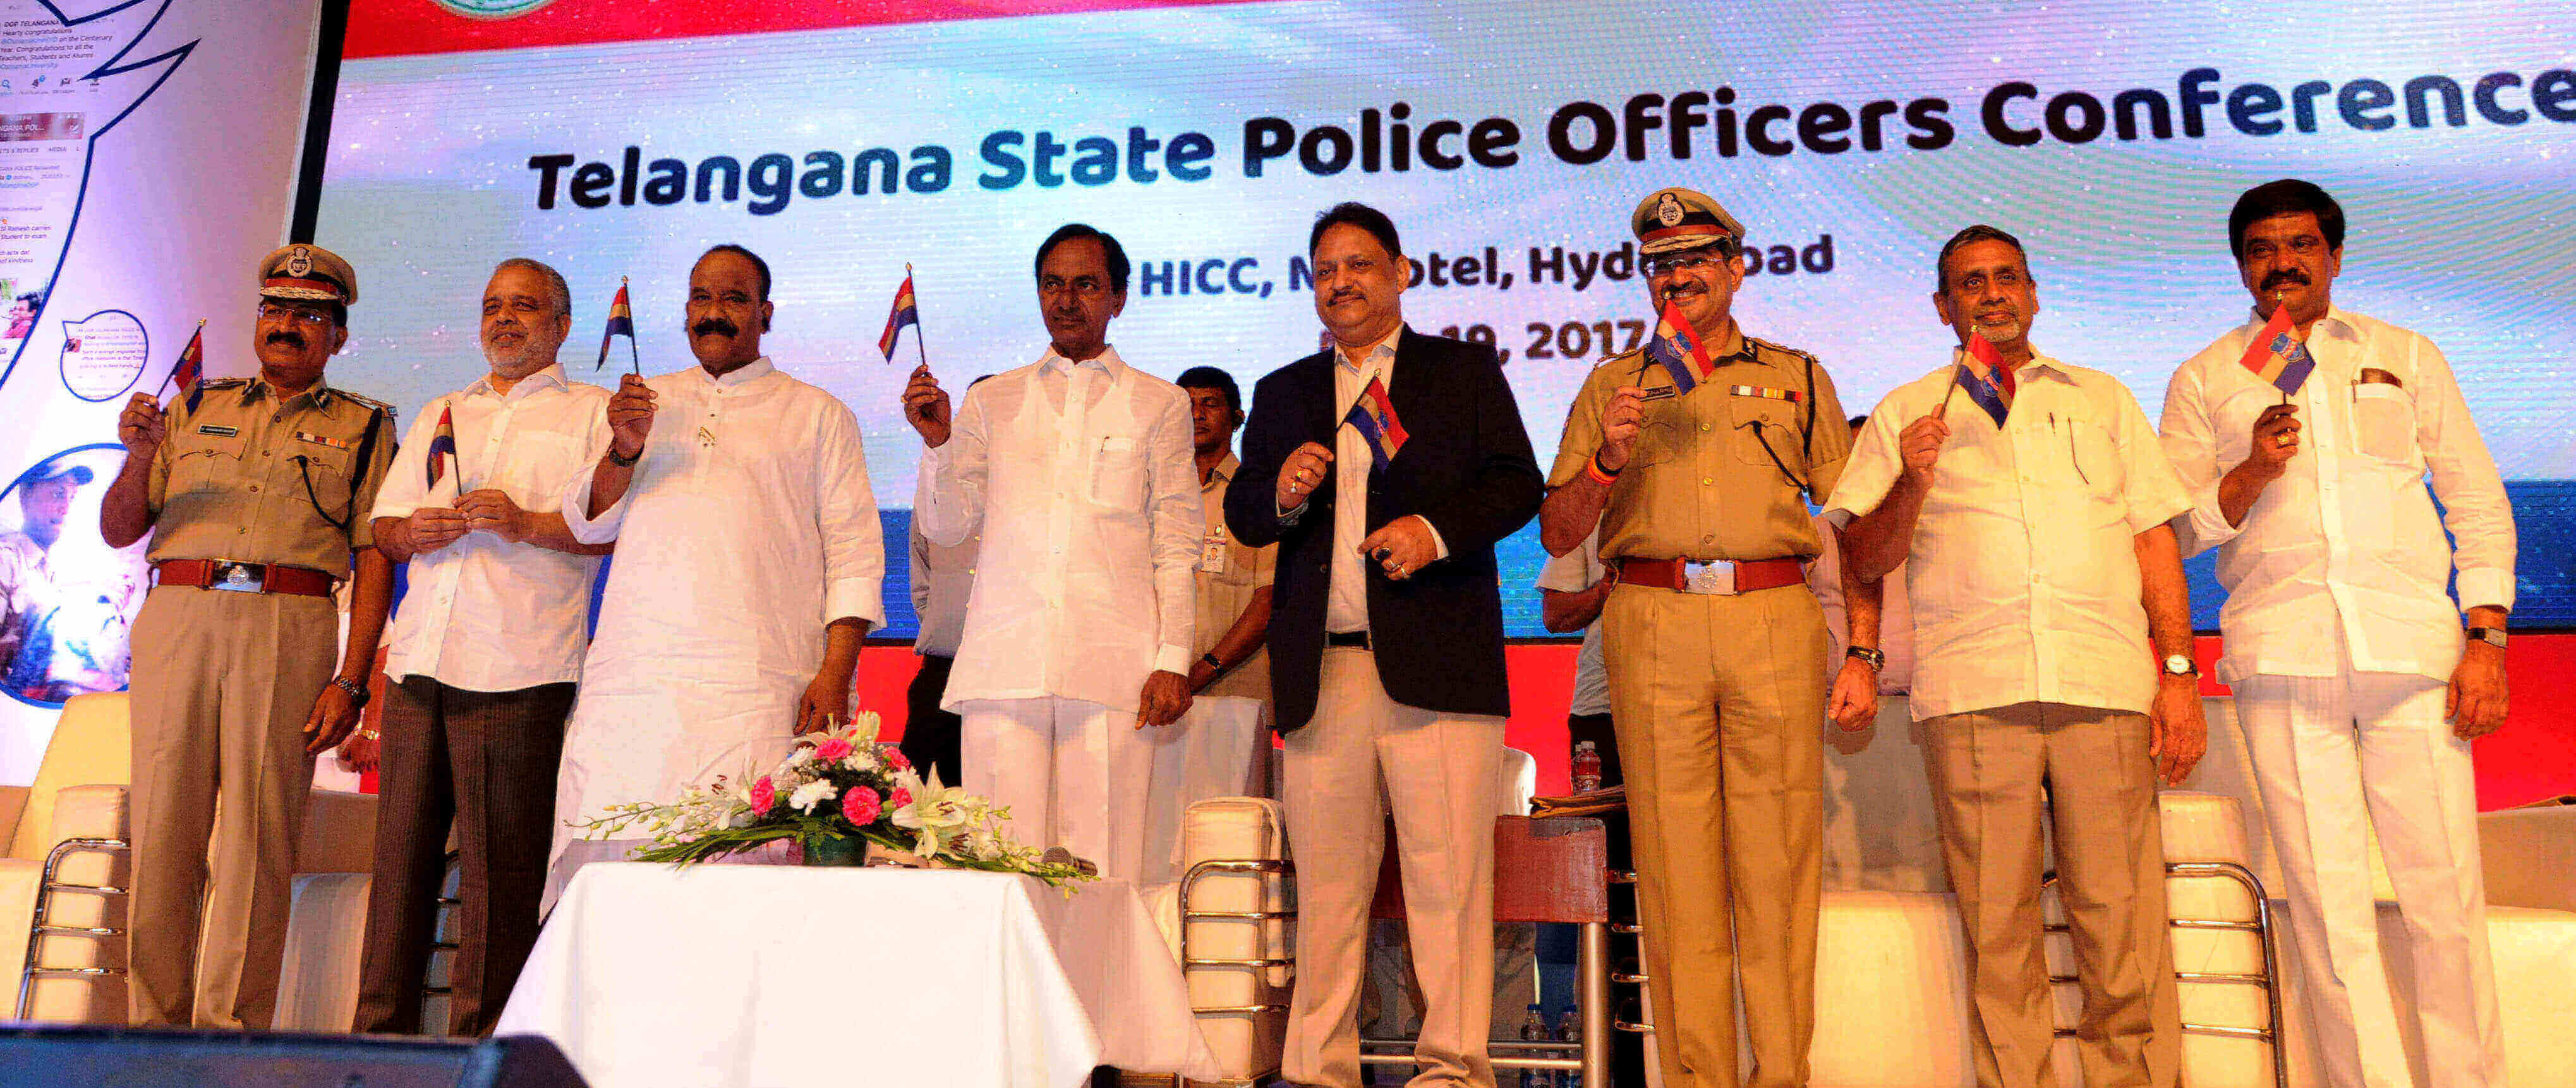 Telangana CM K Chandrashekhar Rao made the inaugural address of the statewide police conference held in Hyderabad at HICC on .19.05.2017.